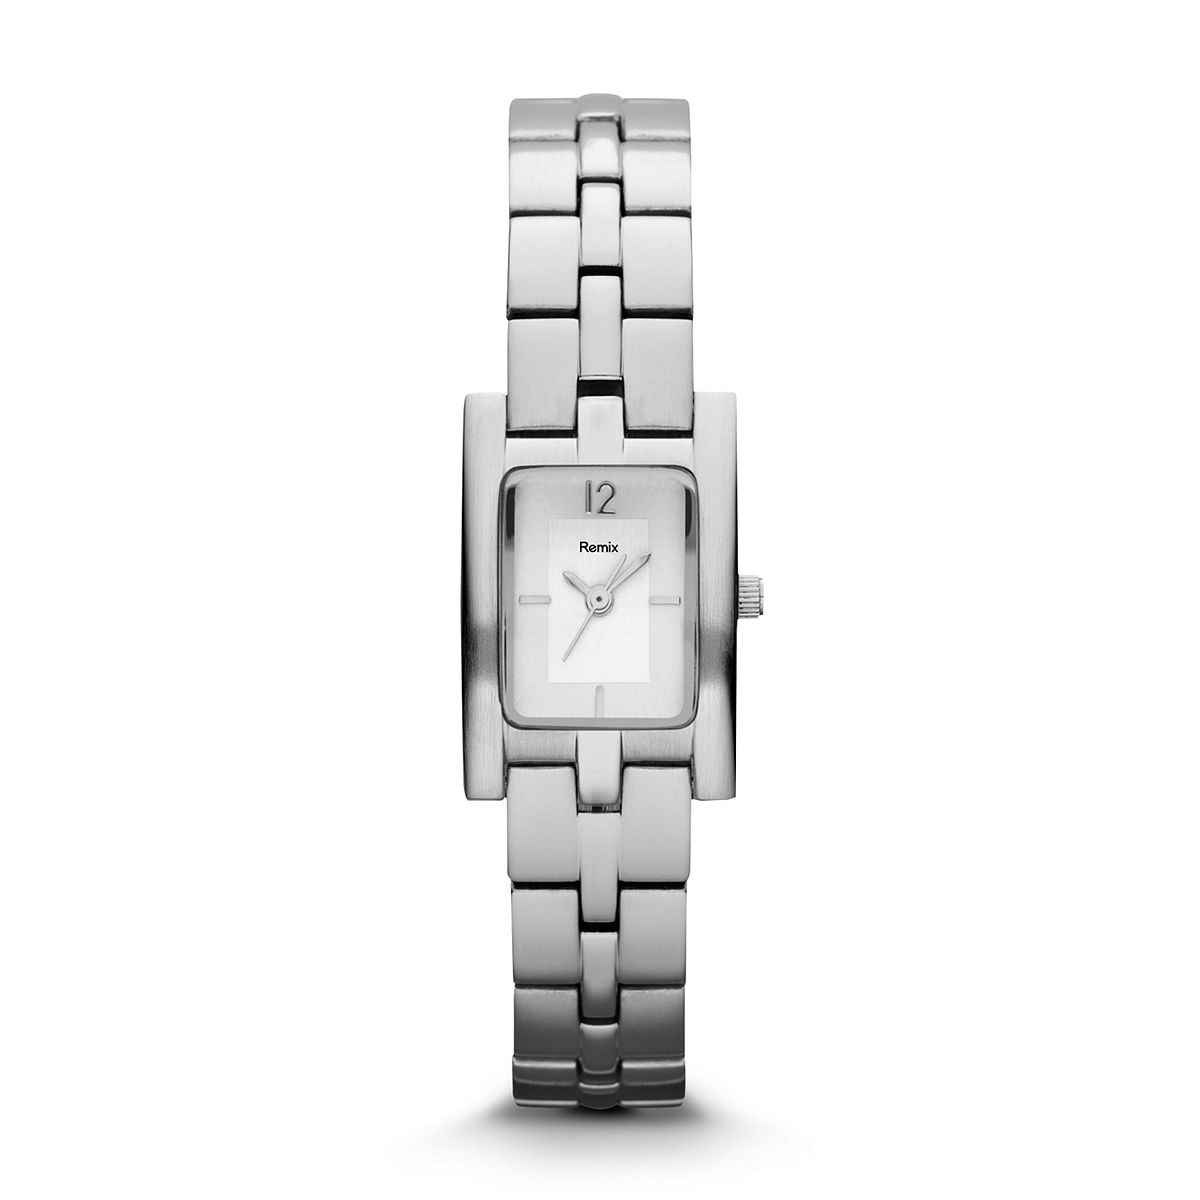 ?Dress Stainless Steel Watch For Ladies ?/ Promotional product f